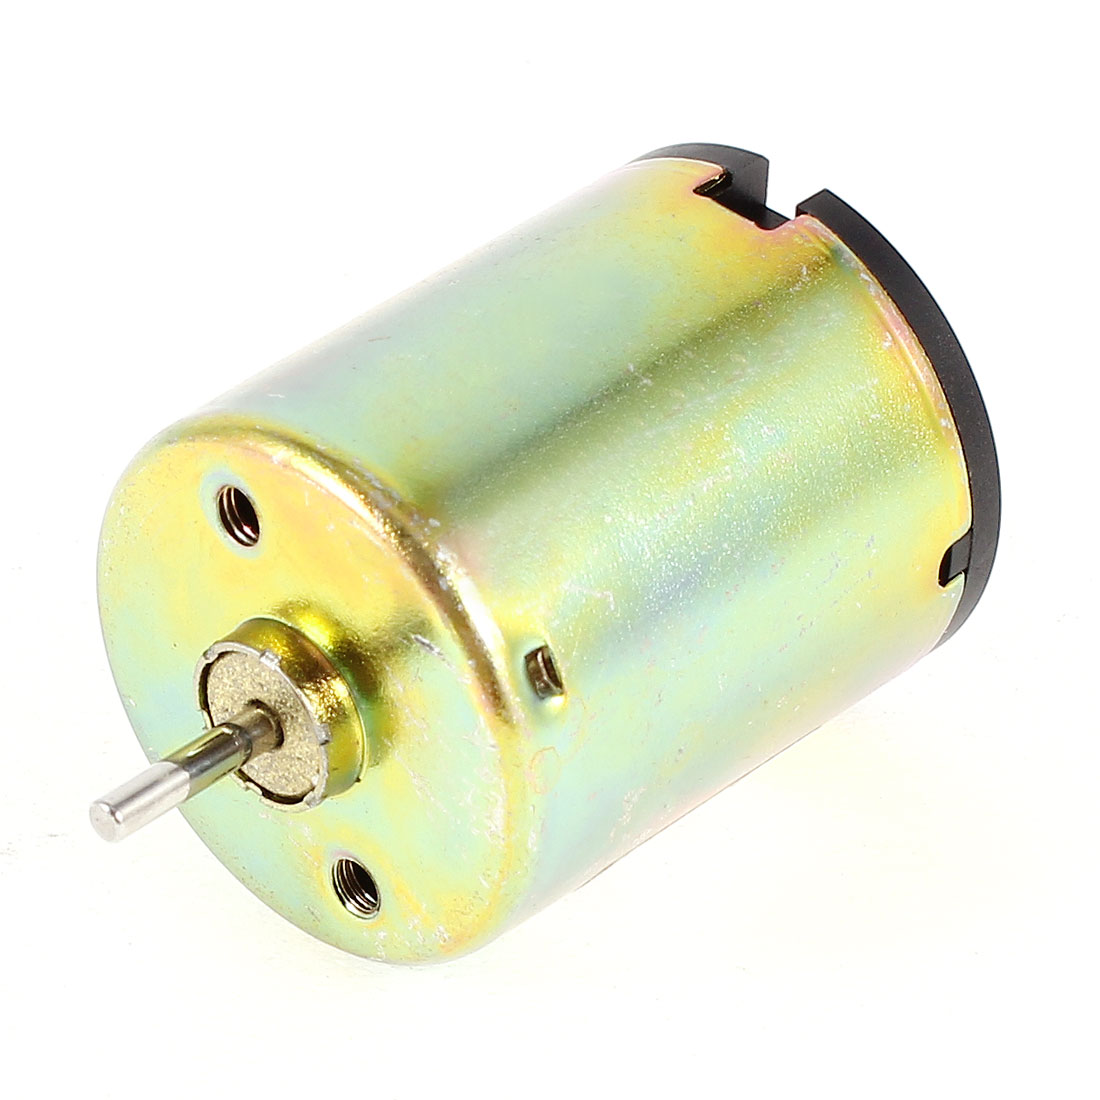 RK-372 DC 6V-24V 2250-4500RPM Rotary Speed Cylinder Shaped Micro Electric Motor